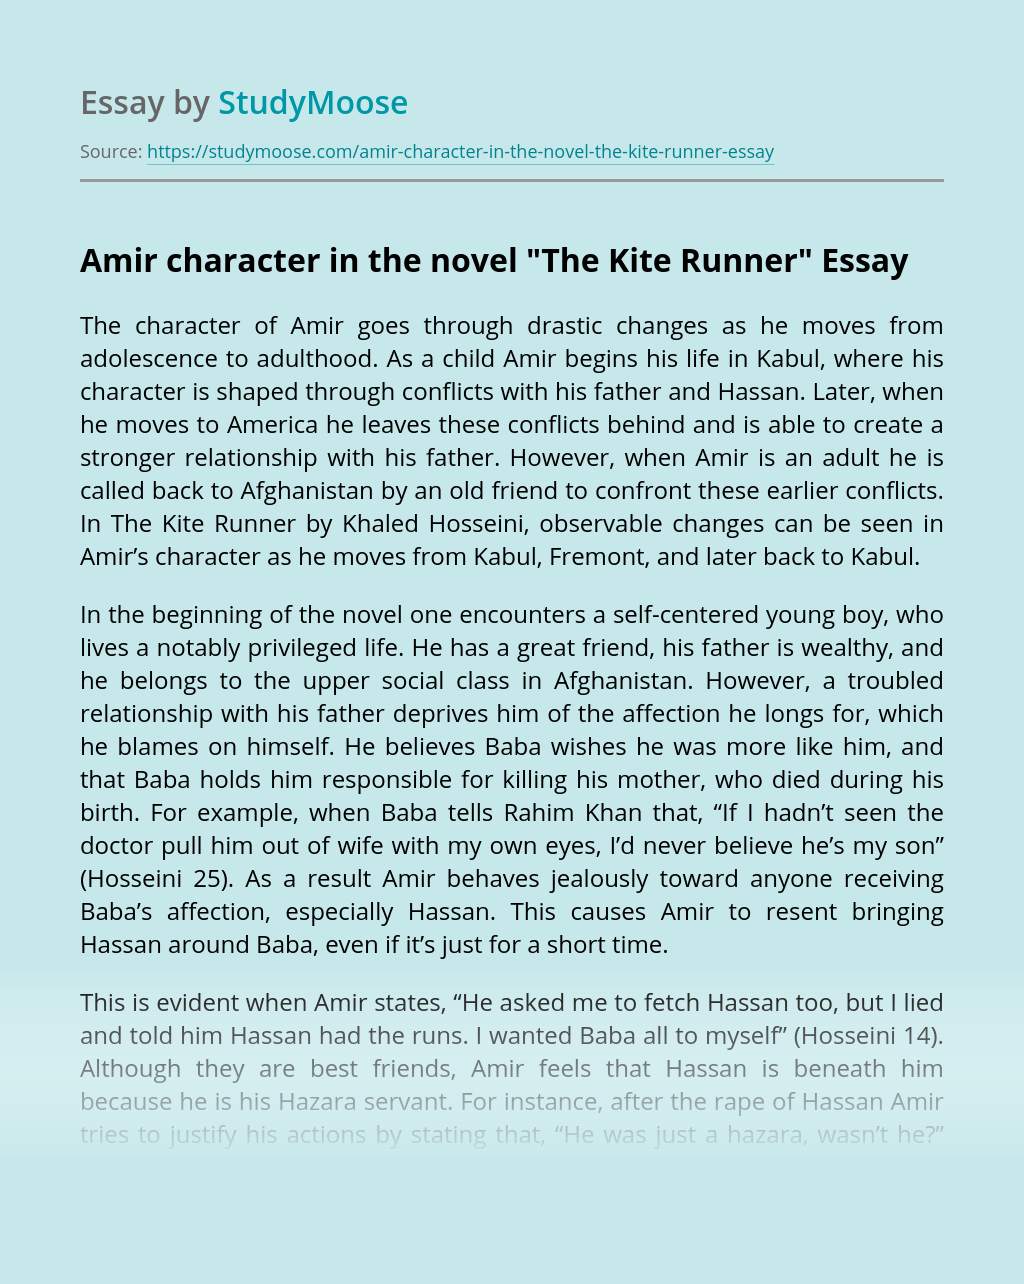 Amir character in the novel